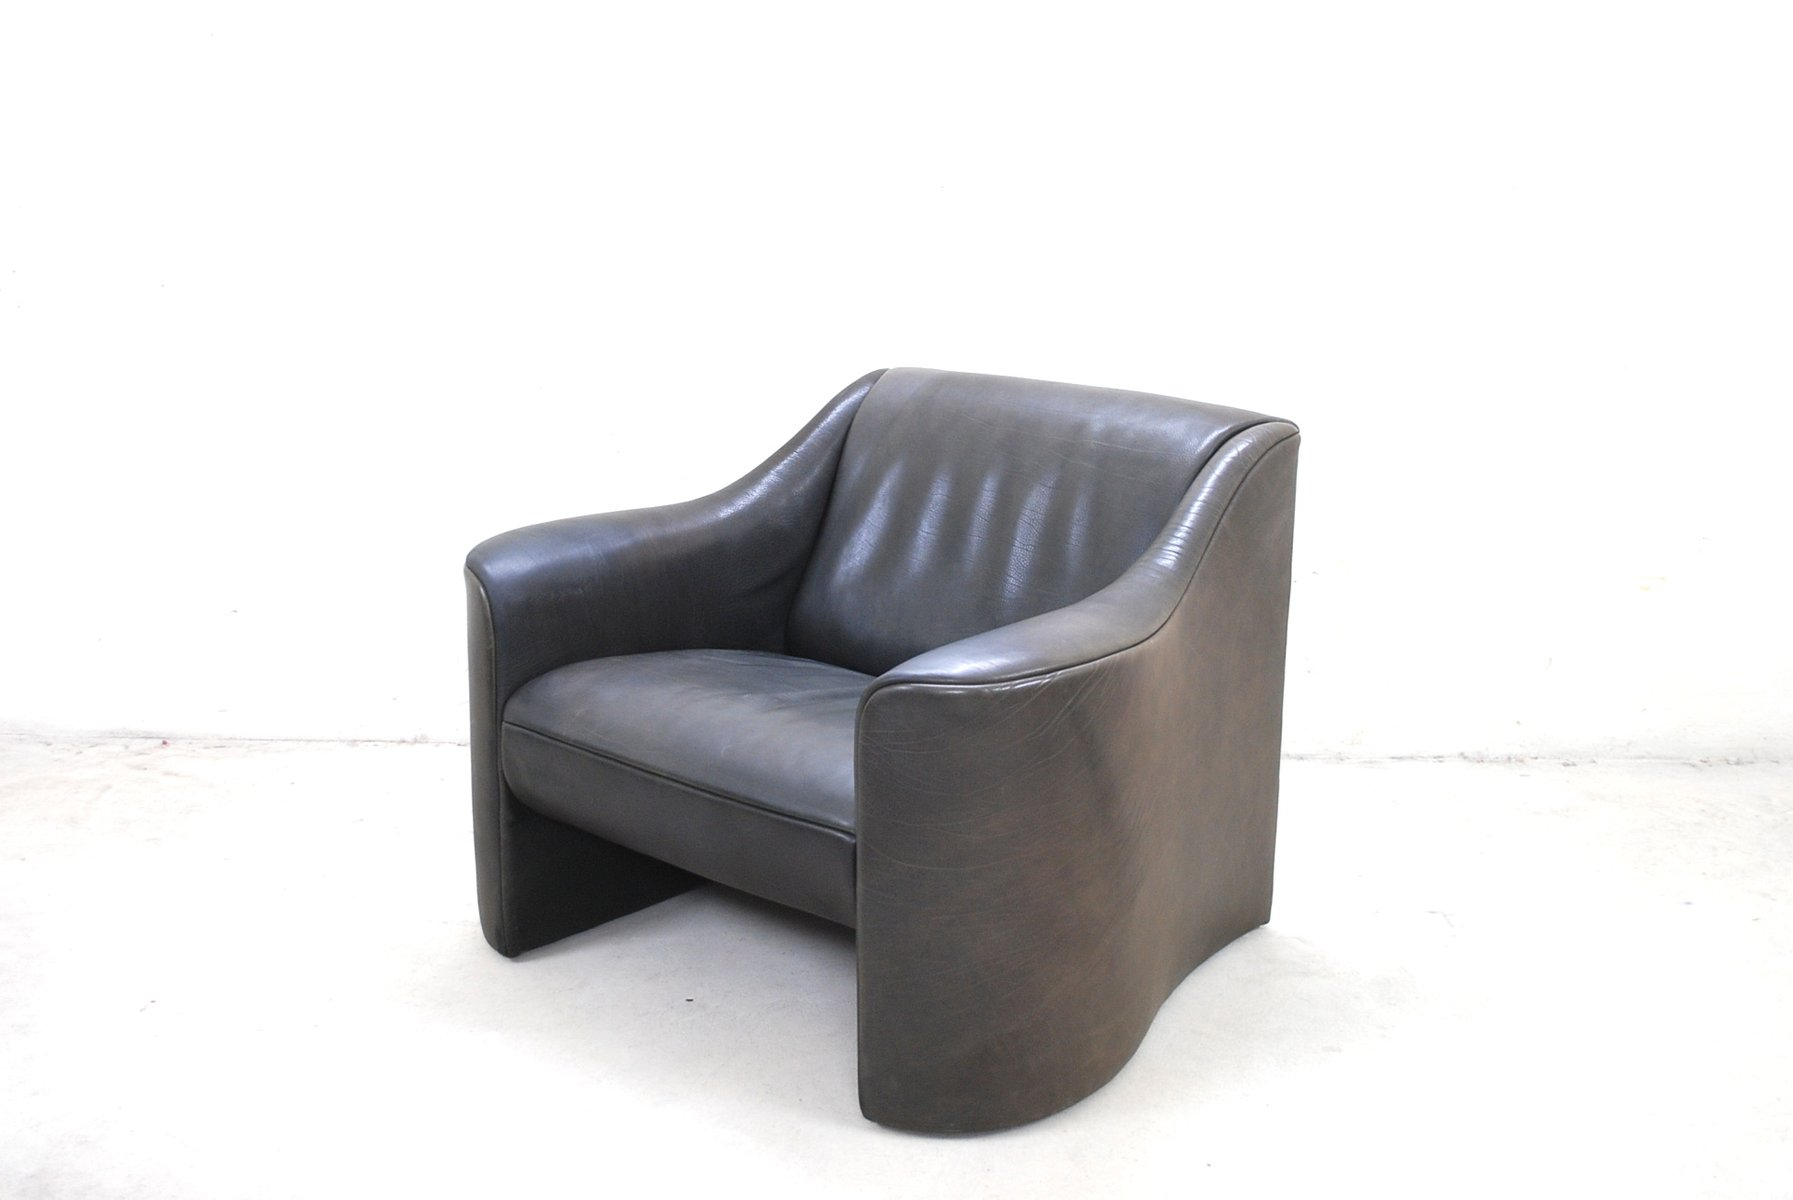 Italian Esquire Leather Armchair Club Chair By Luigi Massoni U0026 Giorgio  Cazzaniga For Matteo Grassi, 1980s